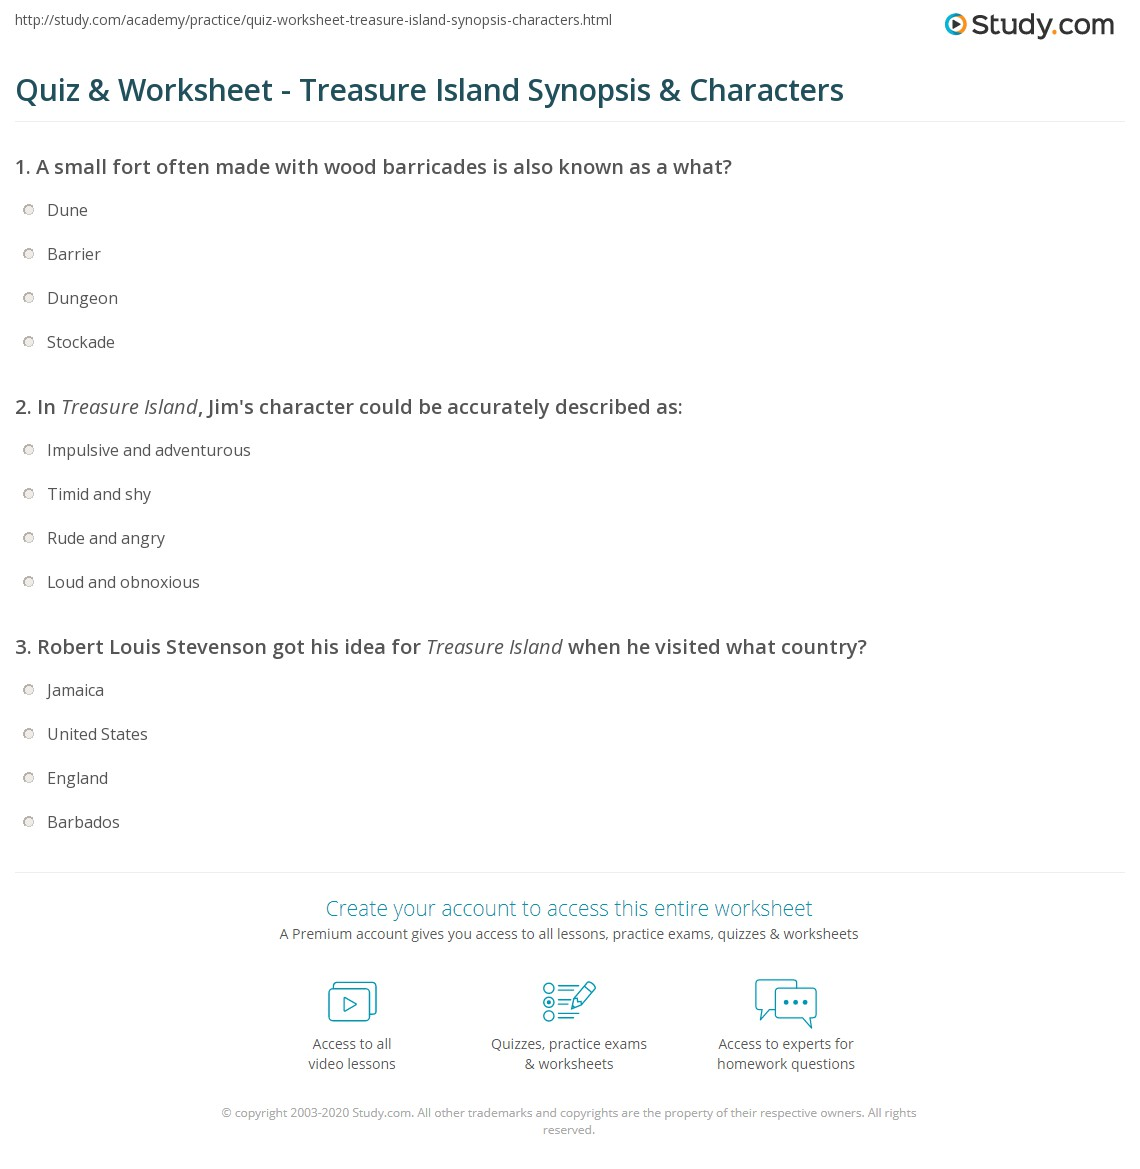 quiz worksheet treasure island synopsis characters. Black Bedroom Furniture Sets. Home Design Ideas